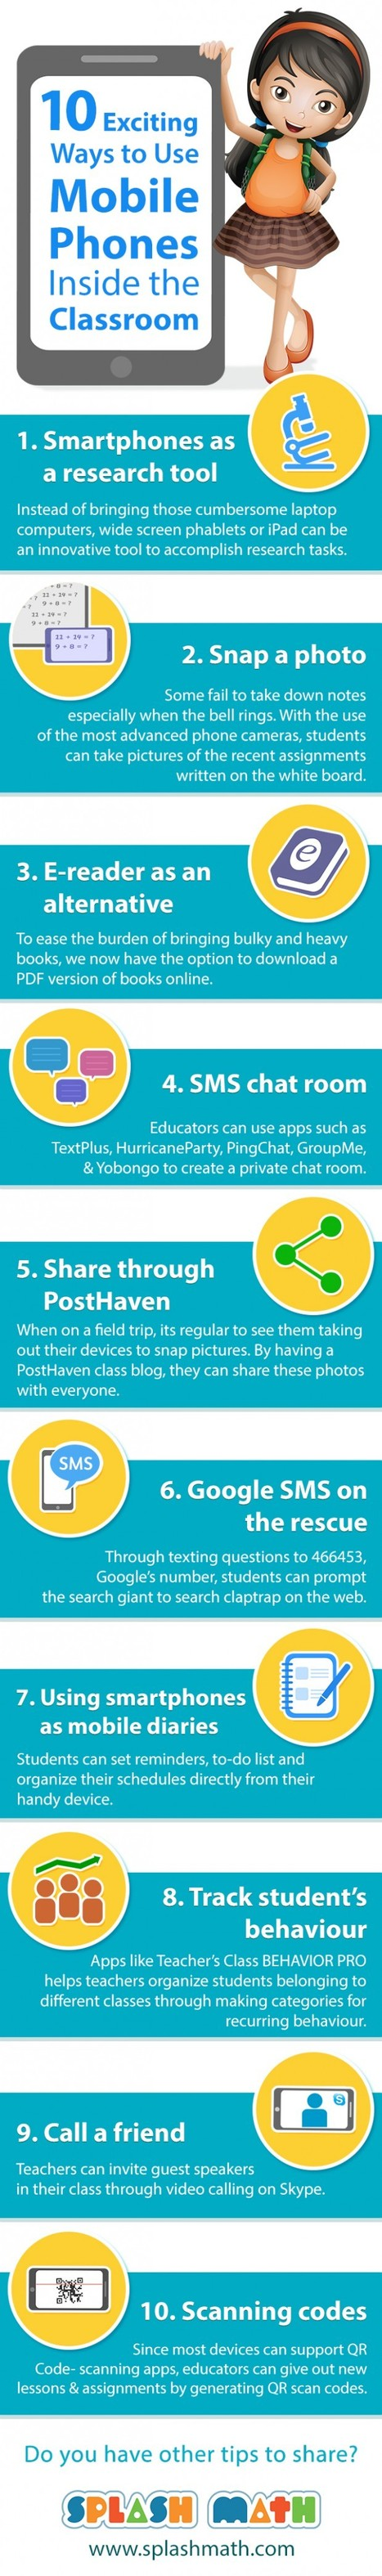 10 Exciting Ways to Use Mobile Phones In the Classroom Infographic | e-Learning Infographics | iPad apps in de klas | Scoop.it